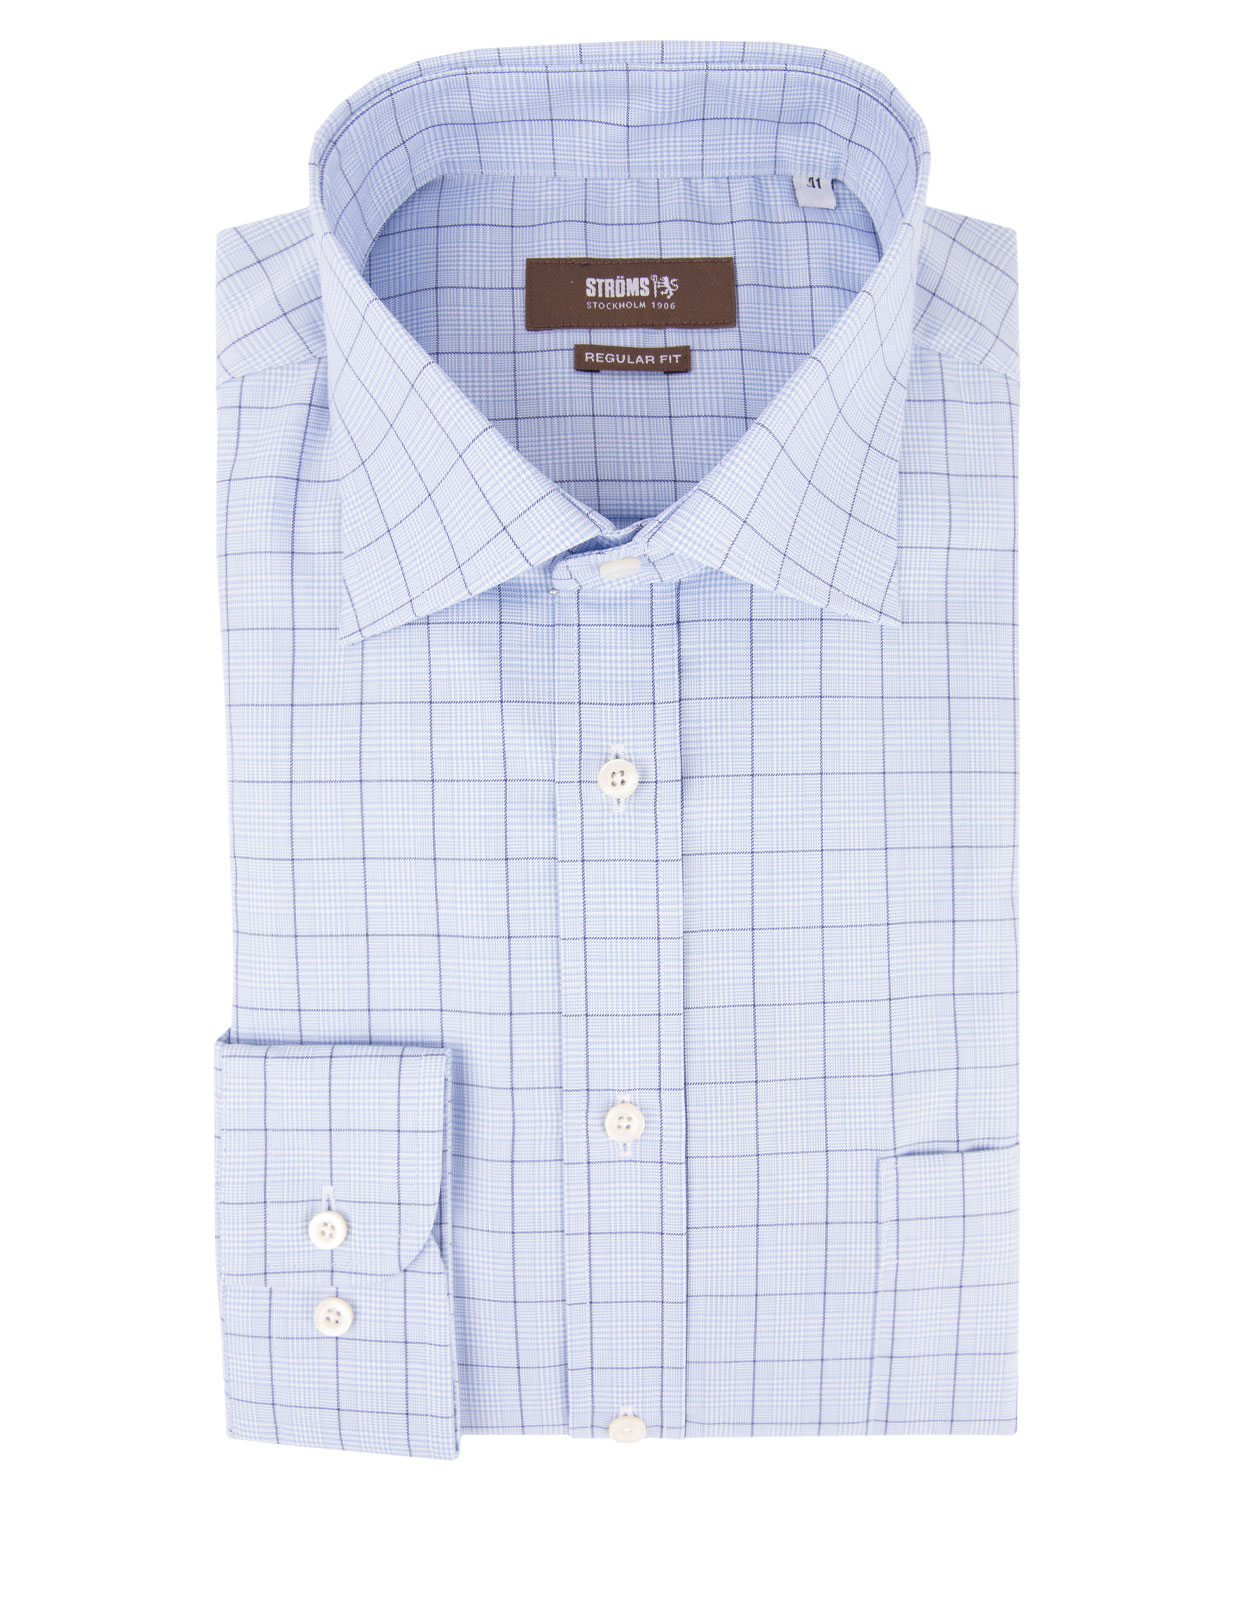 Regular Fit Cotton Shirt Glencheck Blue